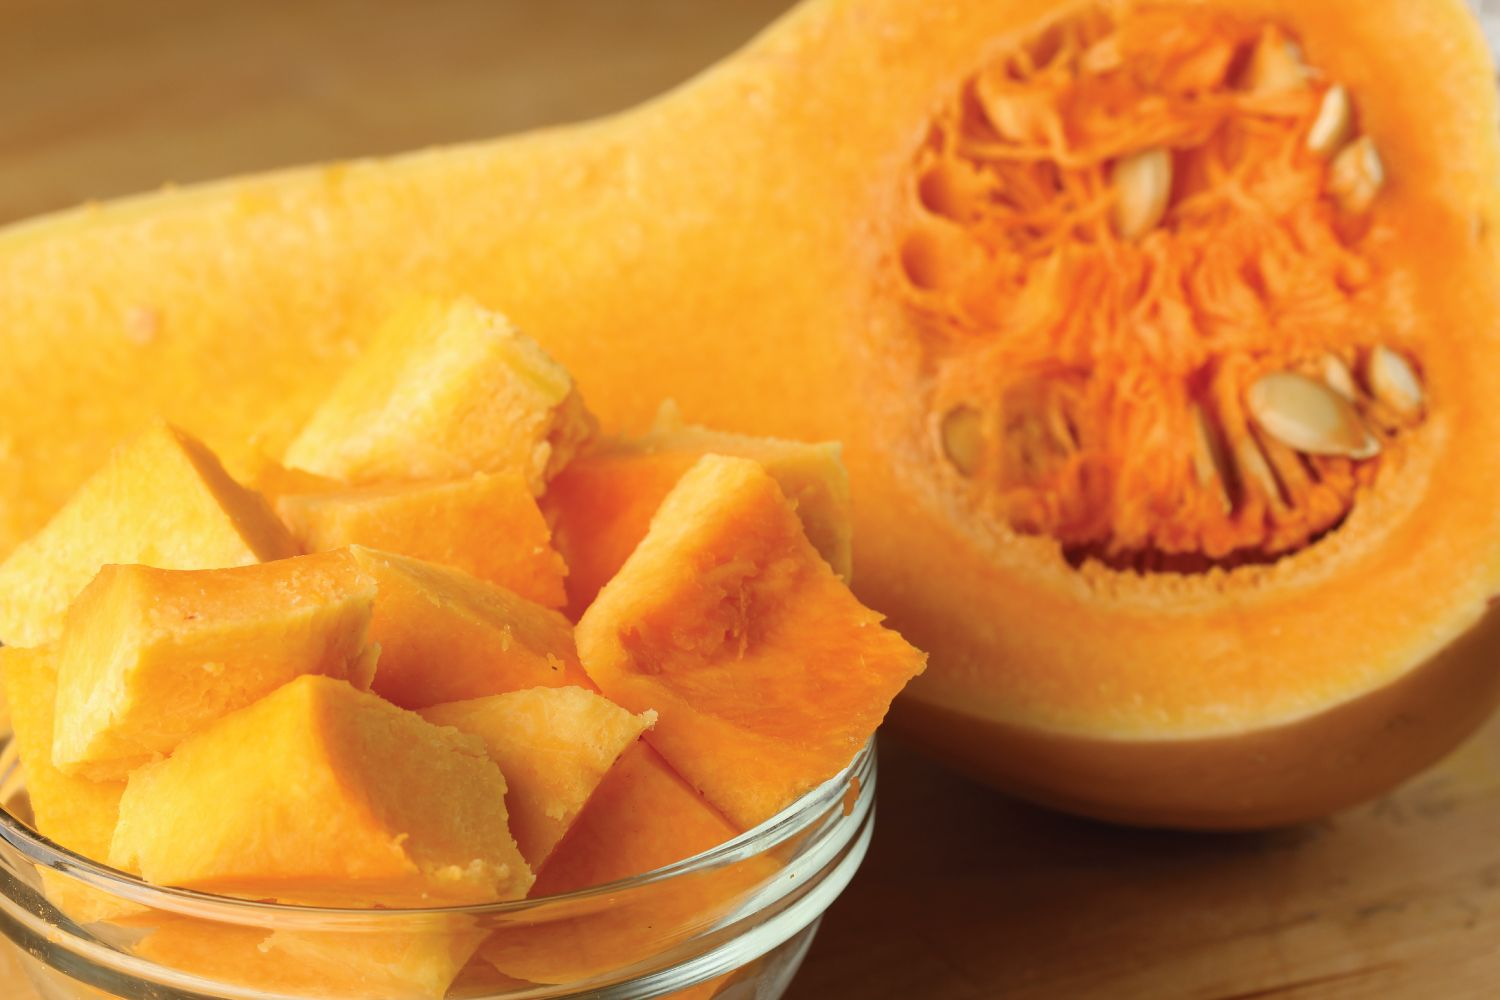 Butternut squash, a winter squash that is technically a fruit, is typically roasted to soften the inner orangey pulp before being eaten, with the skin typically peeled (although it is edible) and the seeds scooped out (also edible raw or roasted) while brushed with cooking oil and seasoned. The orange fleshy pulp is abundant with carotenoids, that helps protect your body from lung and oral cavity cancers. Pair cinnamon, nutmeg, Parmesan cheese, butter, red onions, or sage. #butternutsquash